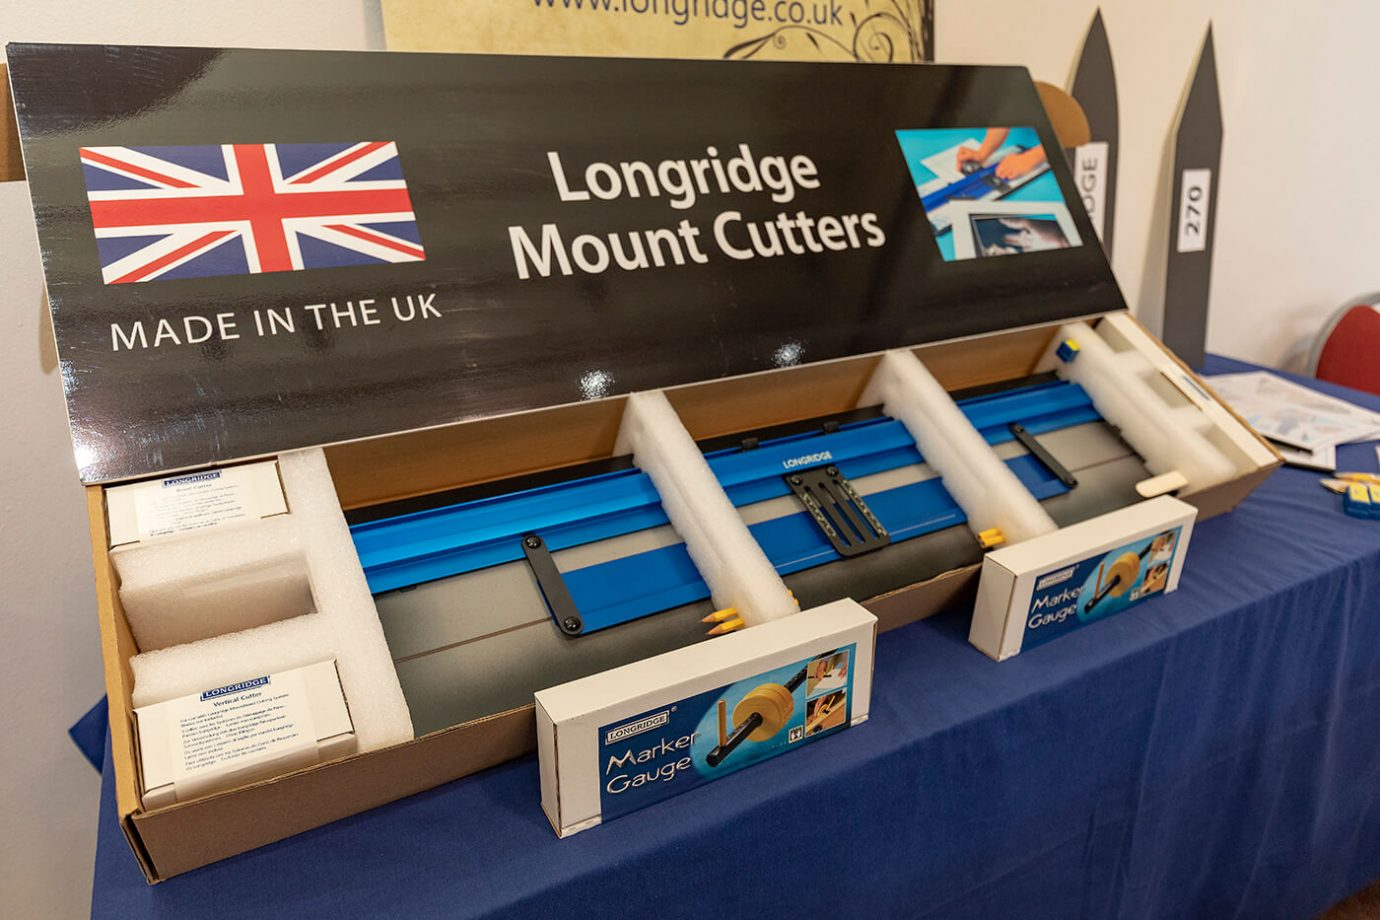 Longridge Mount Cutters - The Northern Photography and Video Show 2018